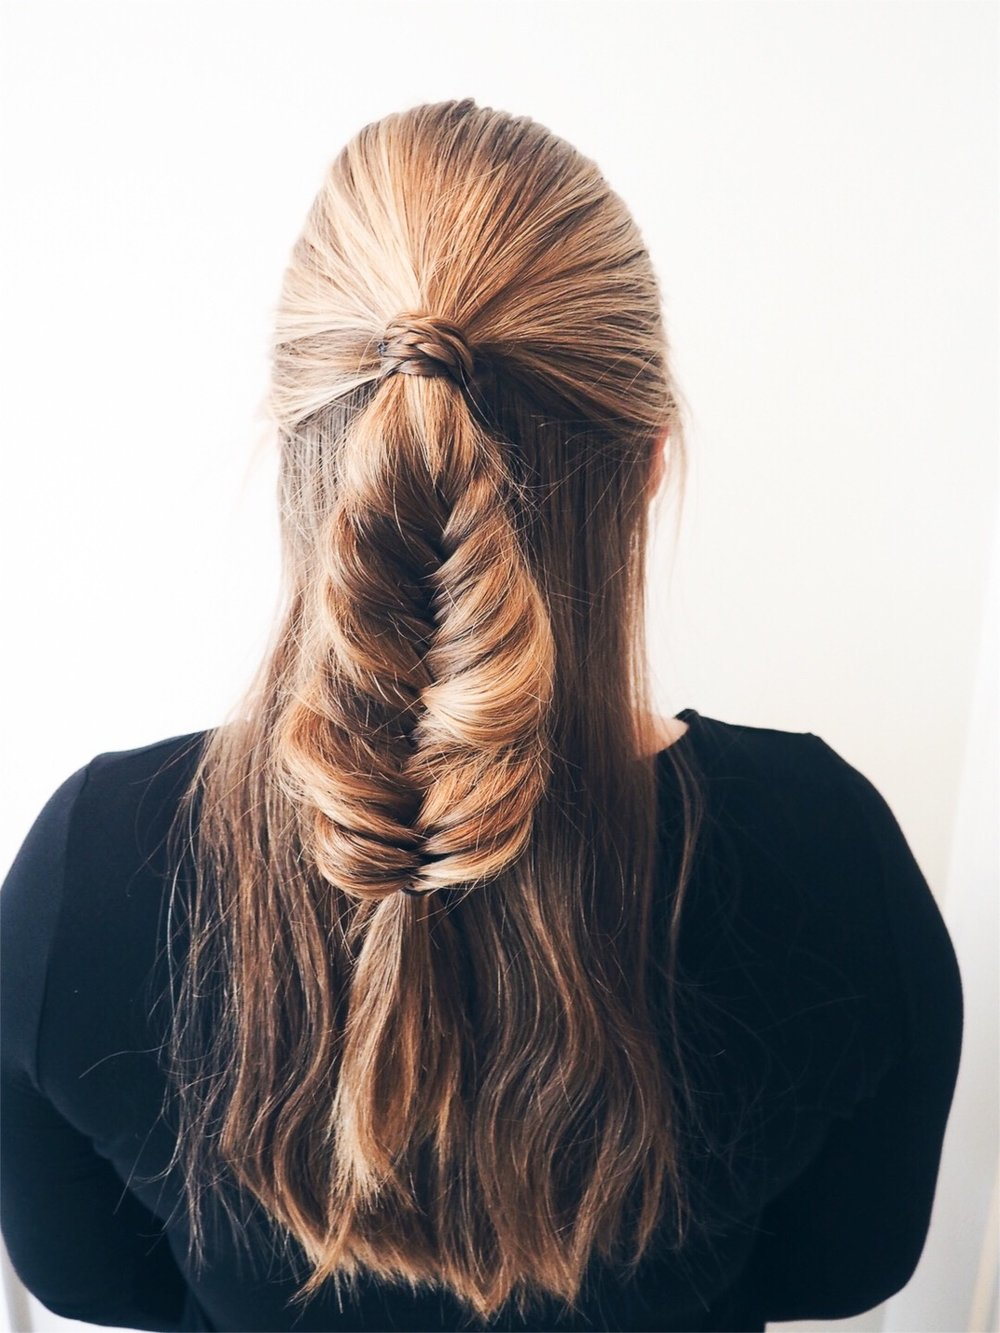 Half Up FishTail braid. Such a good style for casual or a night out!